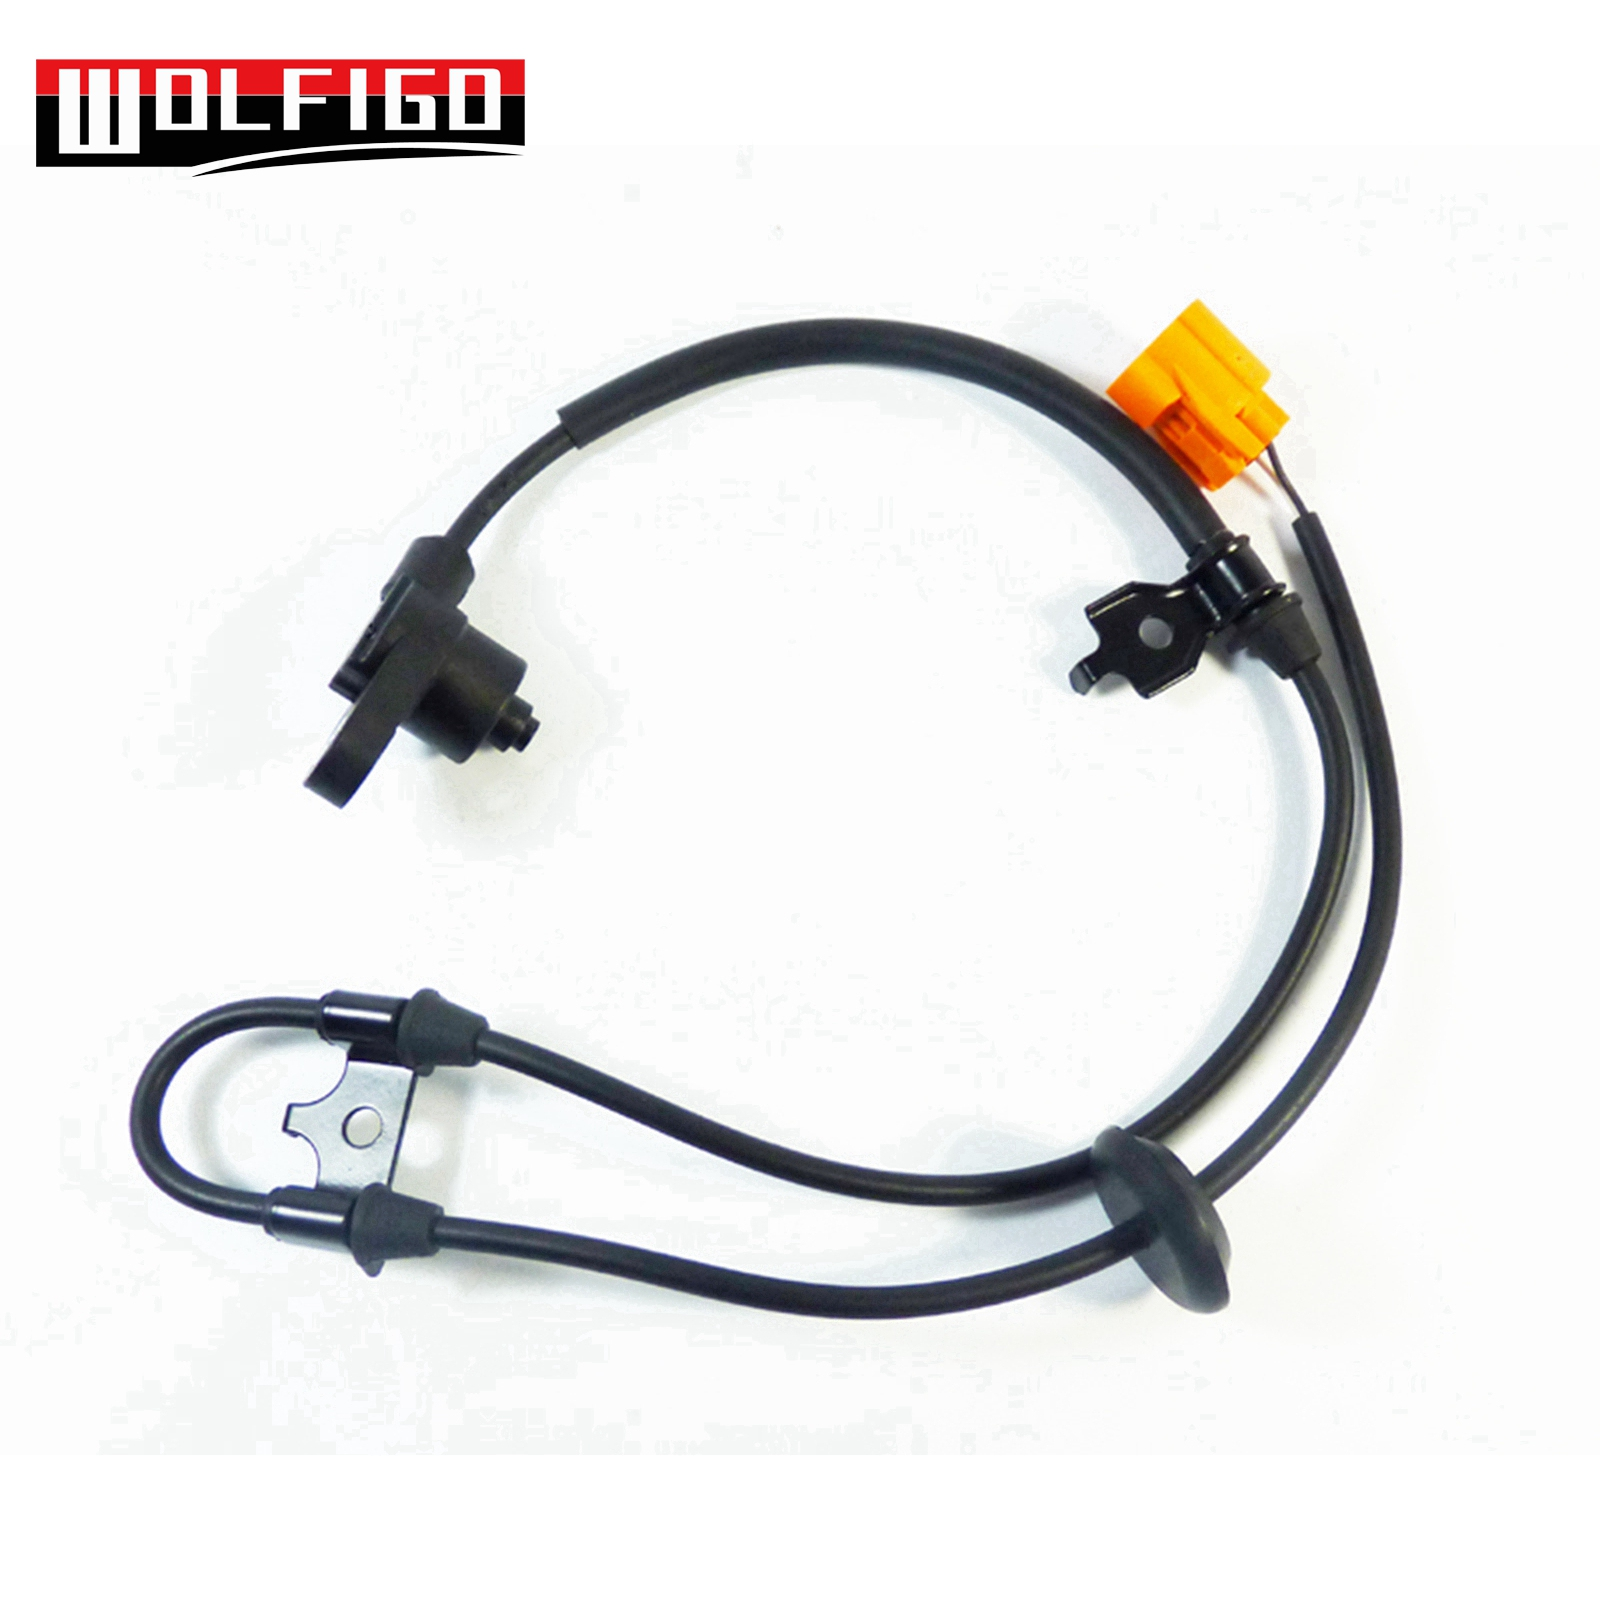 New ABS Wheel Speed Sensor fits 1998 1999 Toyota Sienna ABS Speed Sensor Front Left Driver Side LH